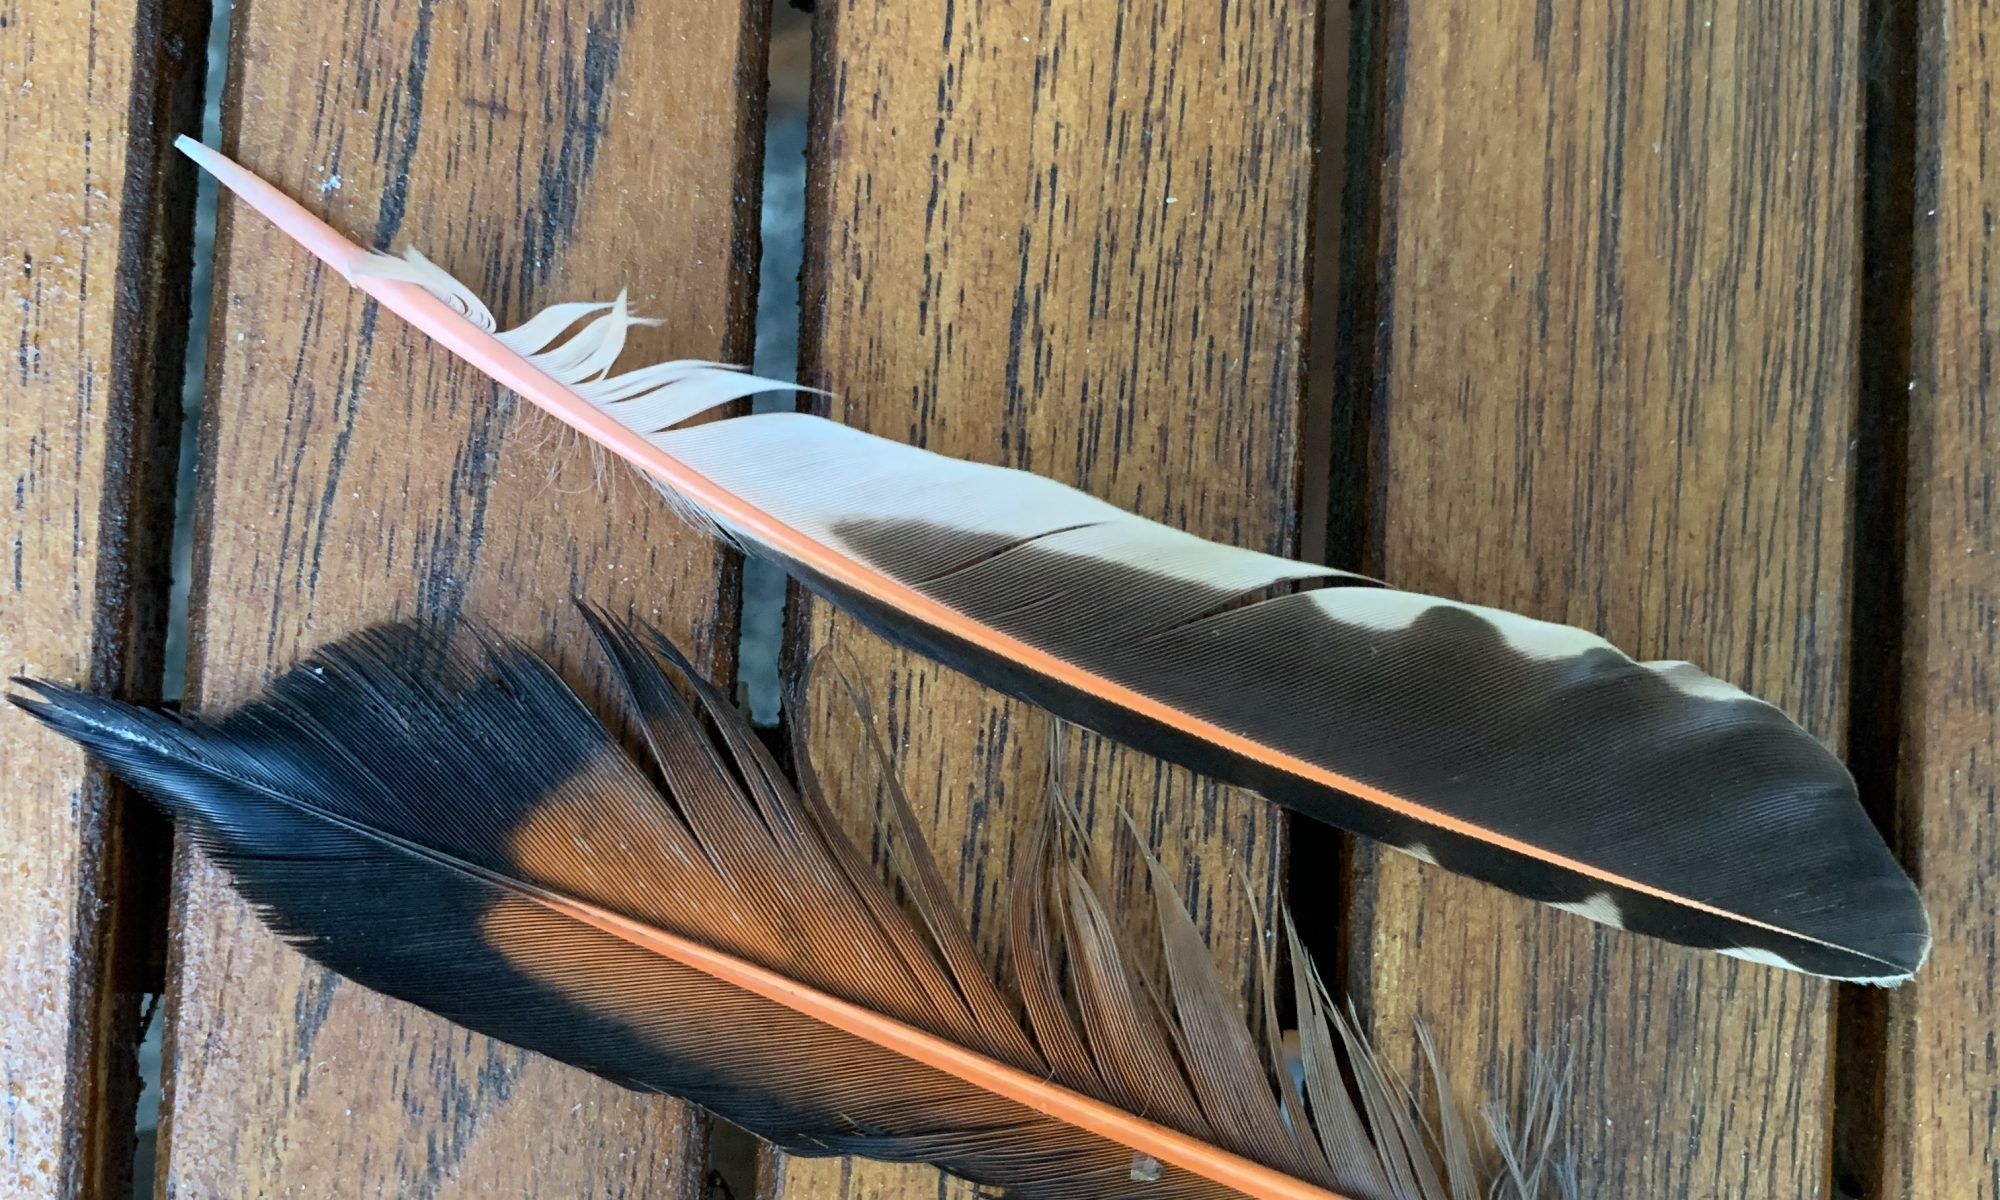 Two feathers, black-tipped is flicker feather with red-orange shaft